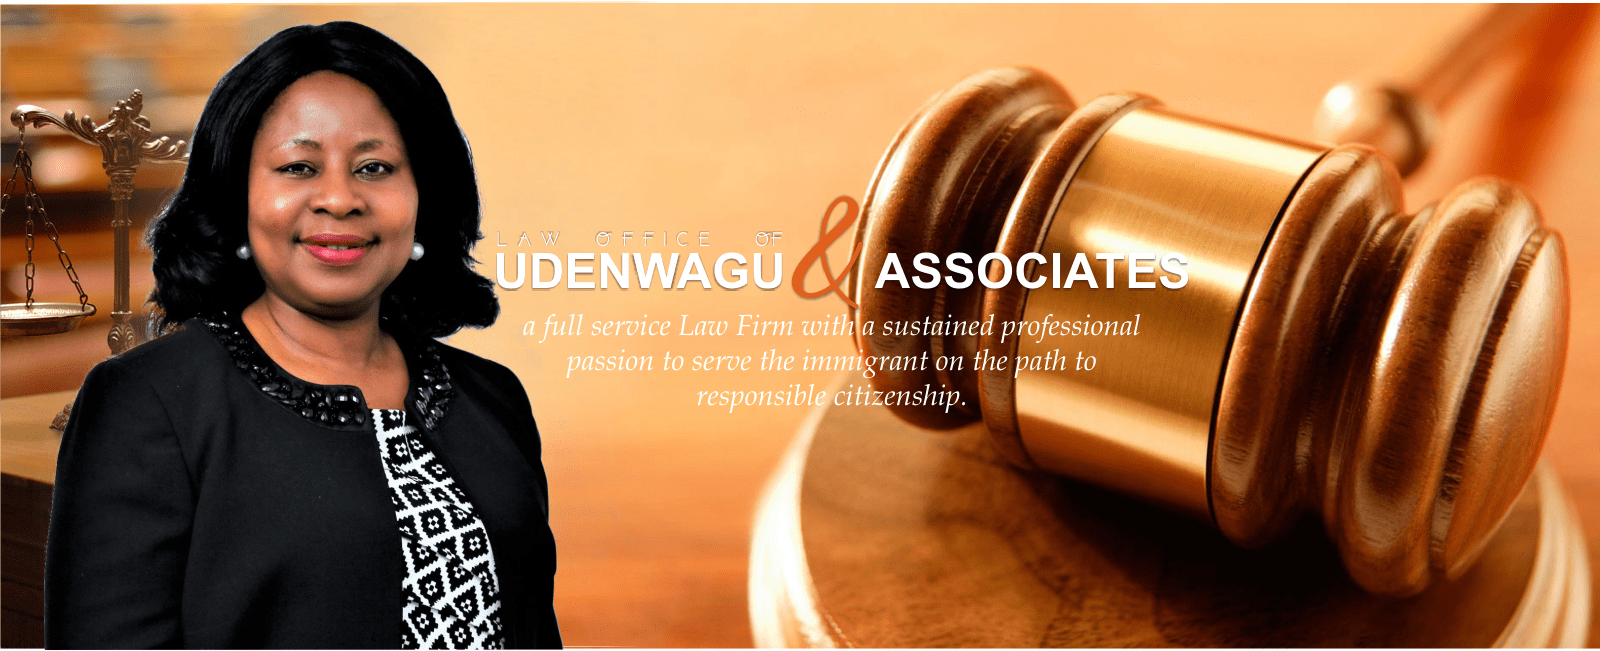 http://Law%20Office%20of%20Udenwagu%20&%20Associates